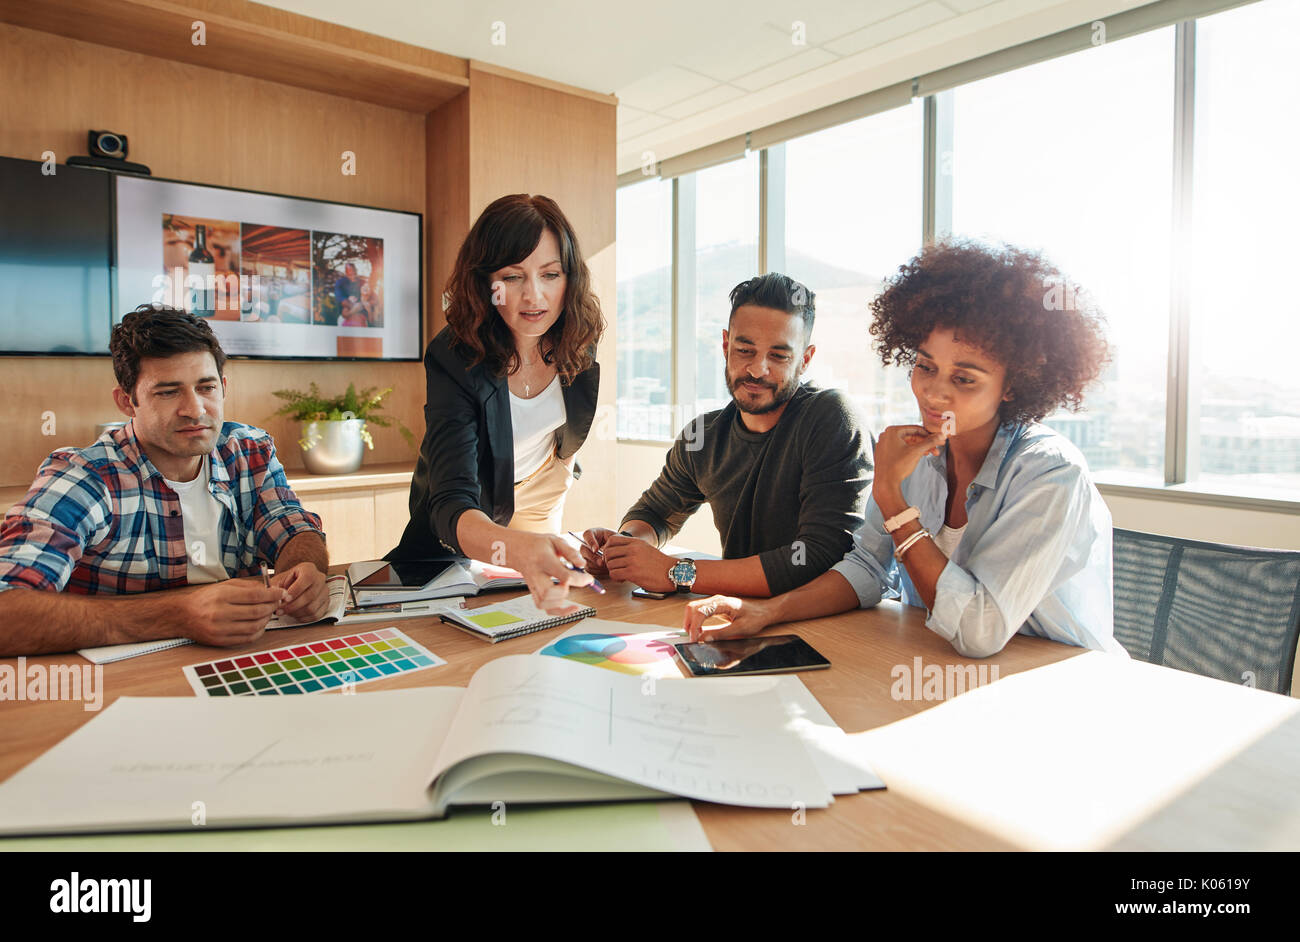 Creative people looking at project plan laid out on table. Mixed race business associates discussing new project plan in modern office. - Stock Image